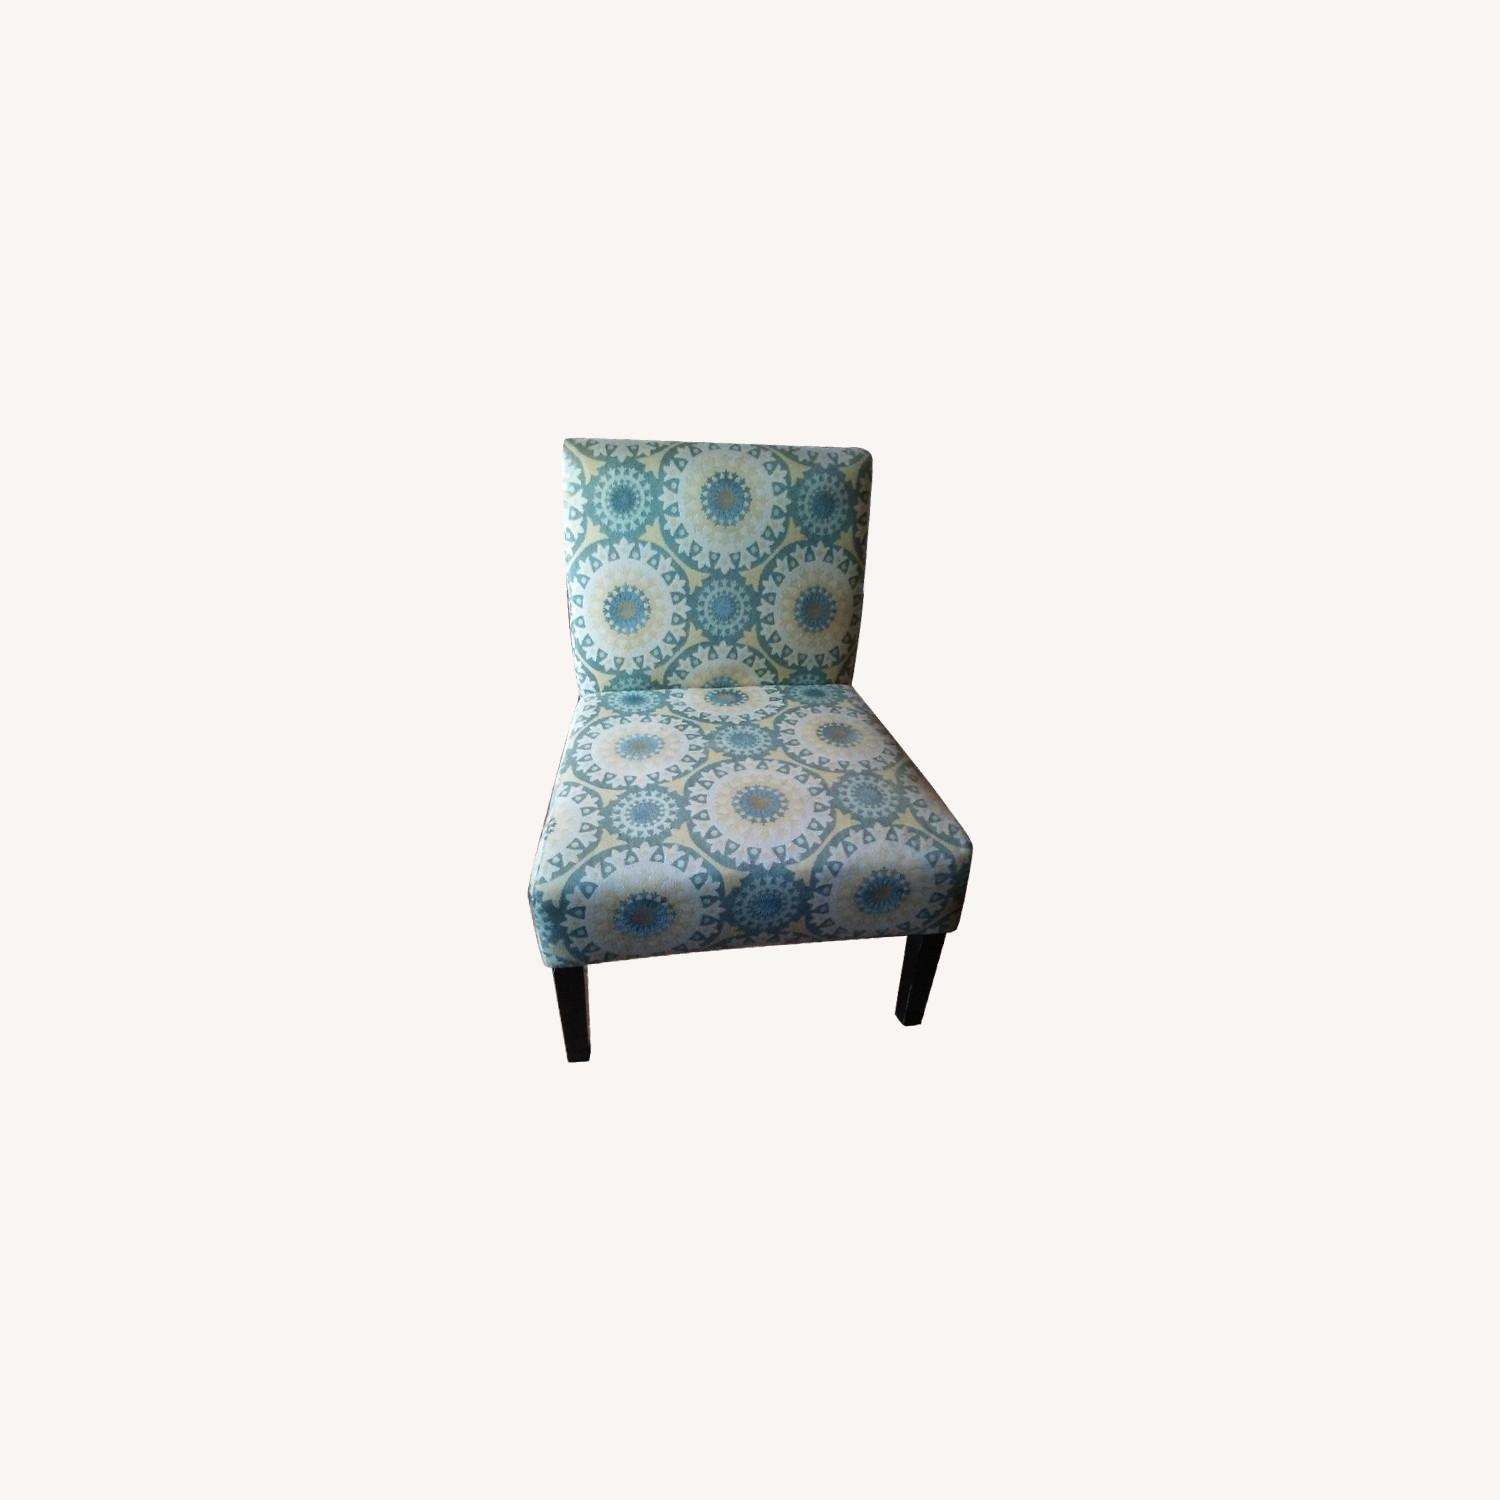 Handy Living Patterned Slipper Chairs - image-0